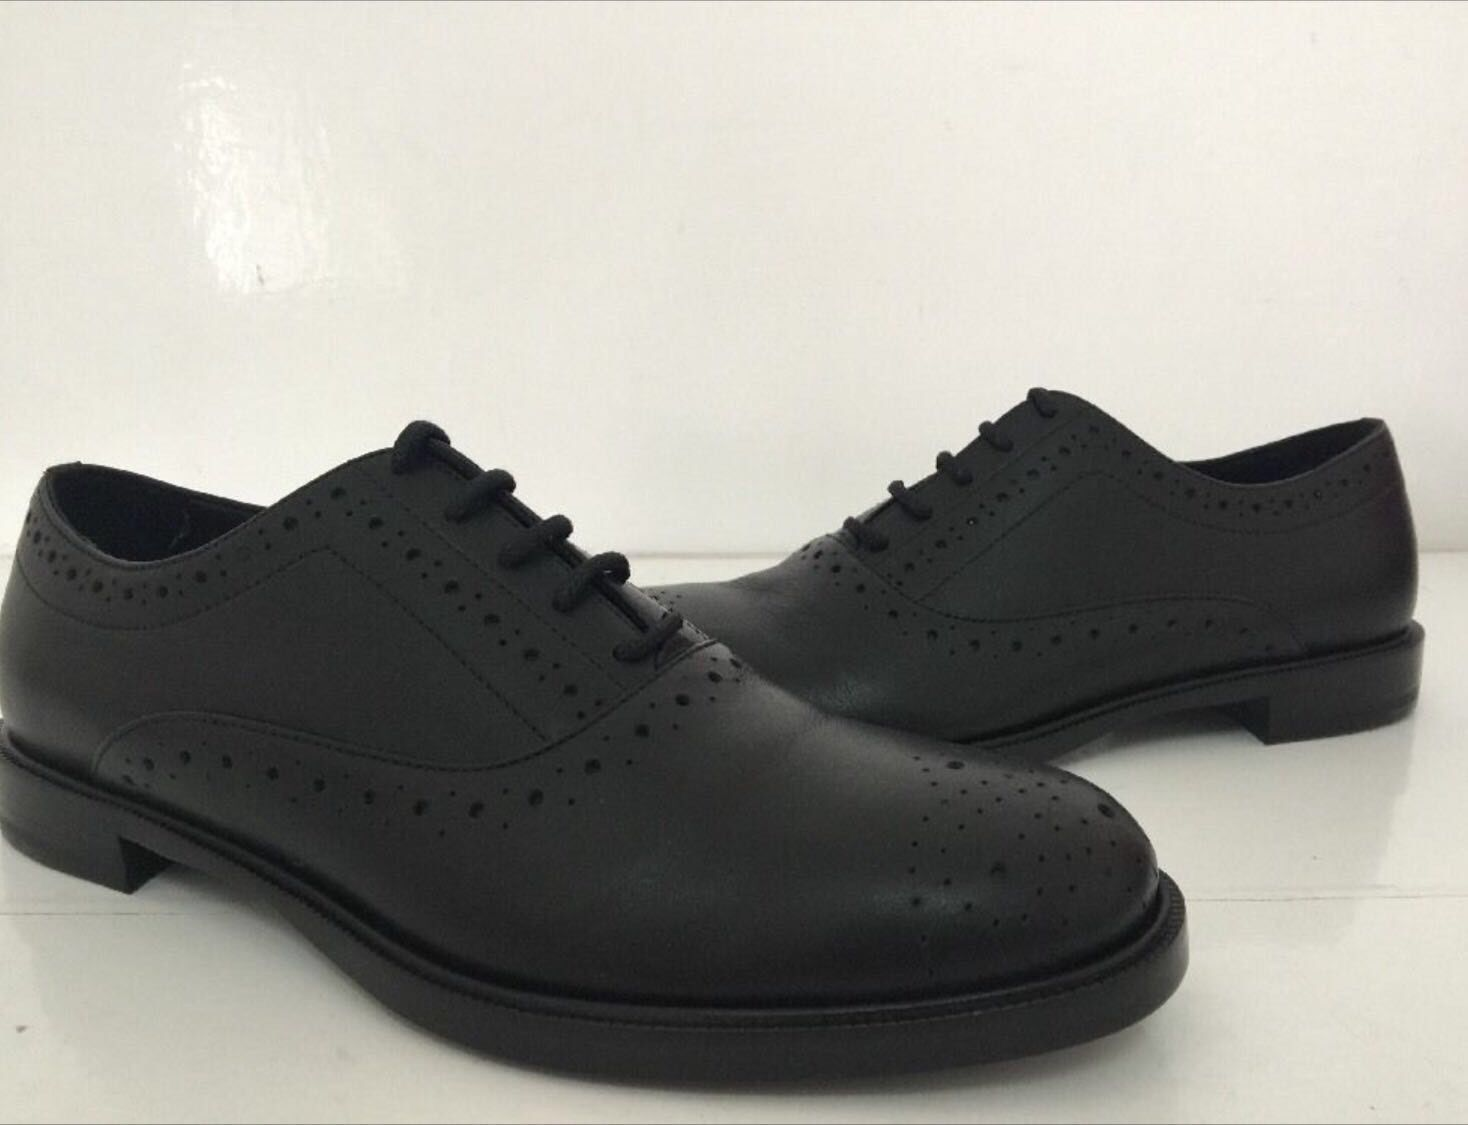 low priced b7e75 62ccd Scarpe Uomo Stringate Giacomorelli Hand Made In Italy